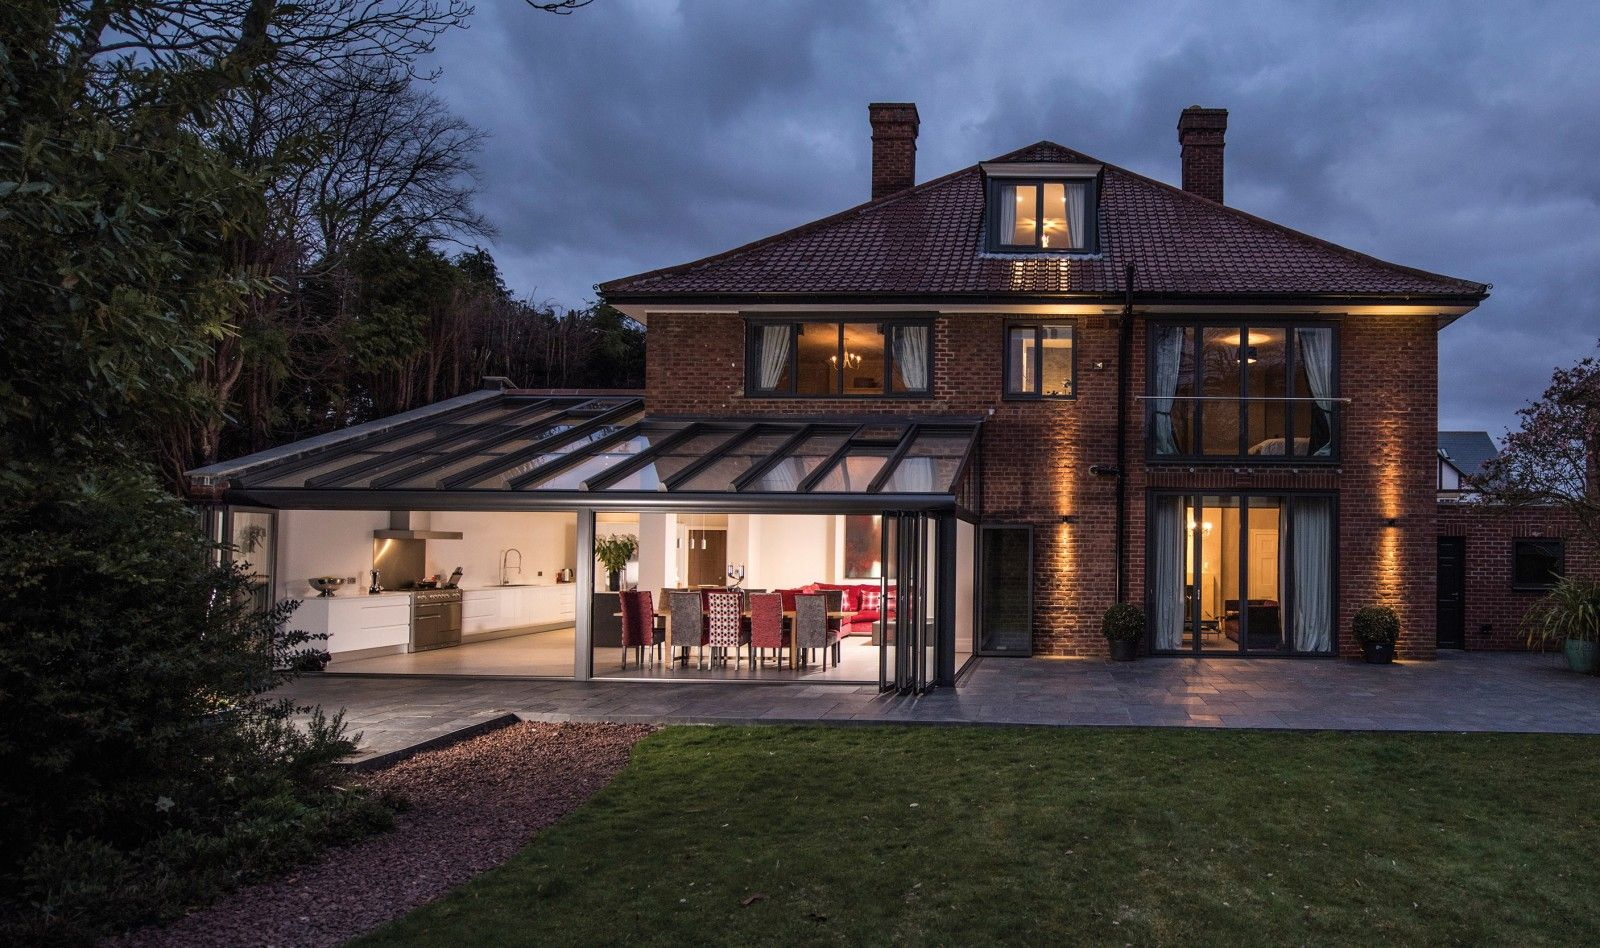 Harmonious with the inside & outdoor living http://caulfieldcompany.co.uk/solarlux/